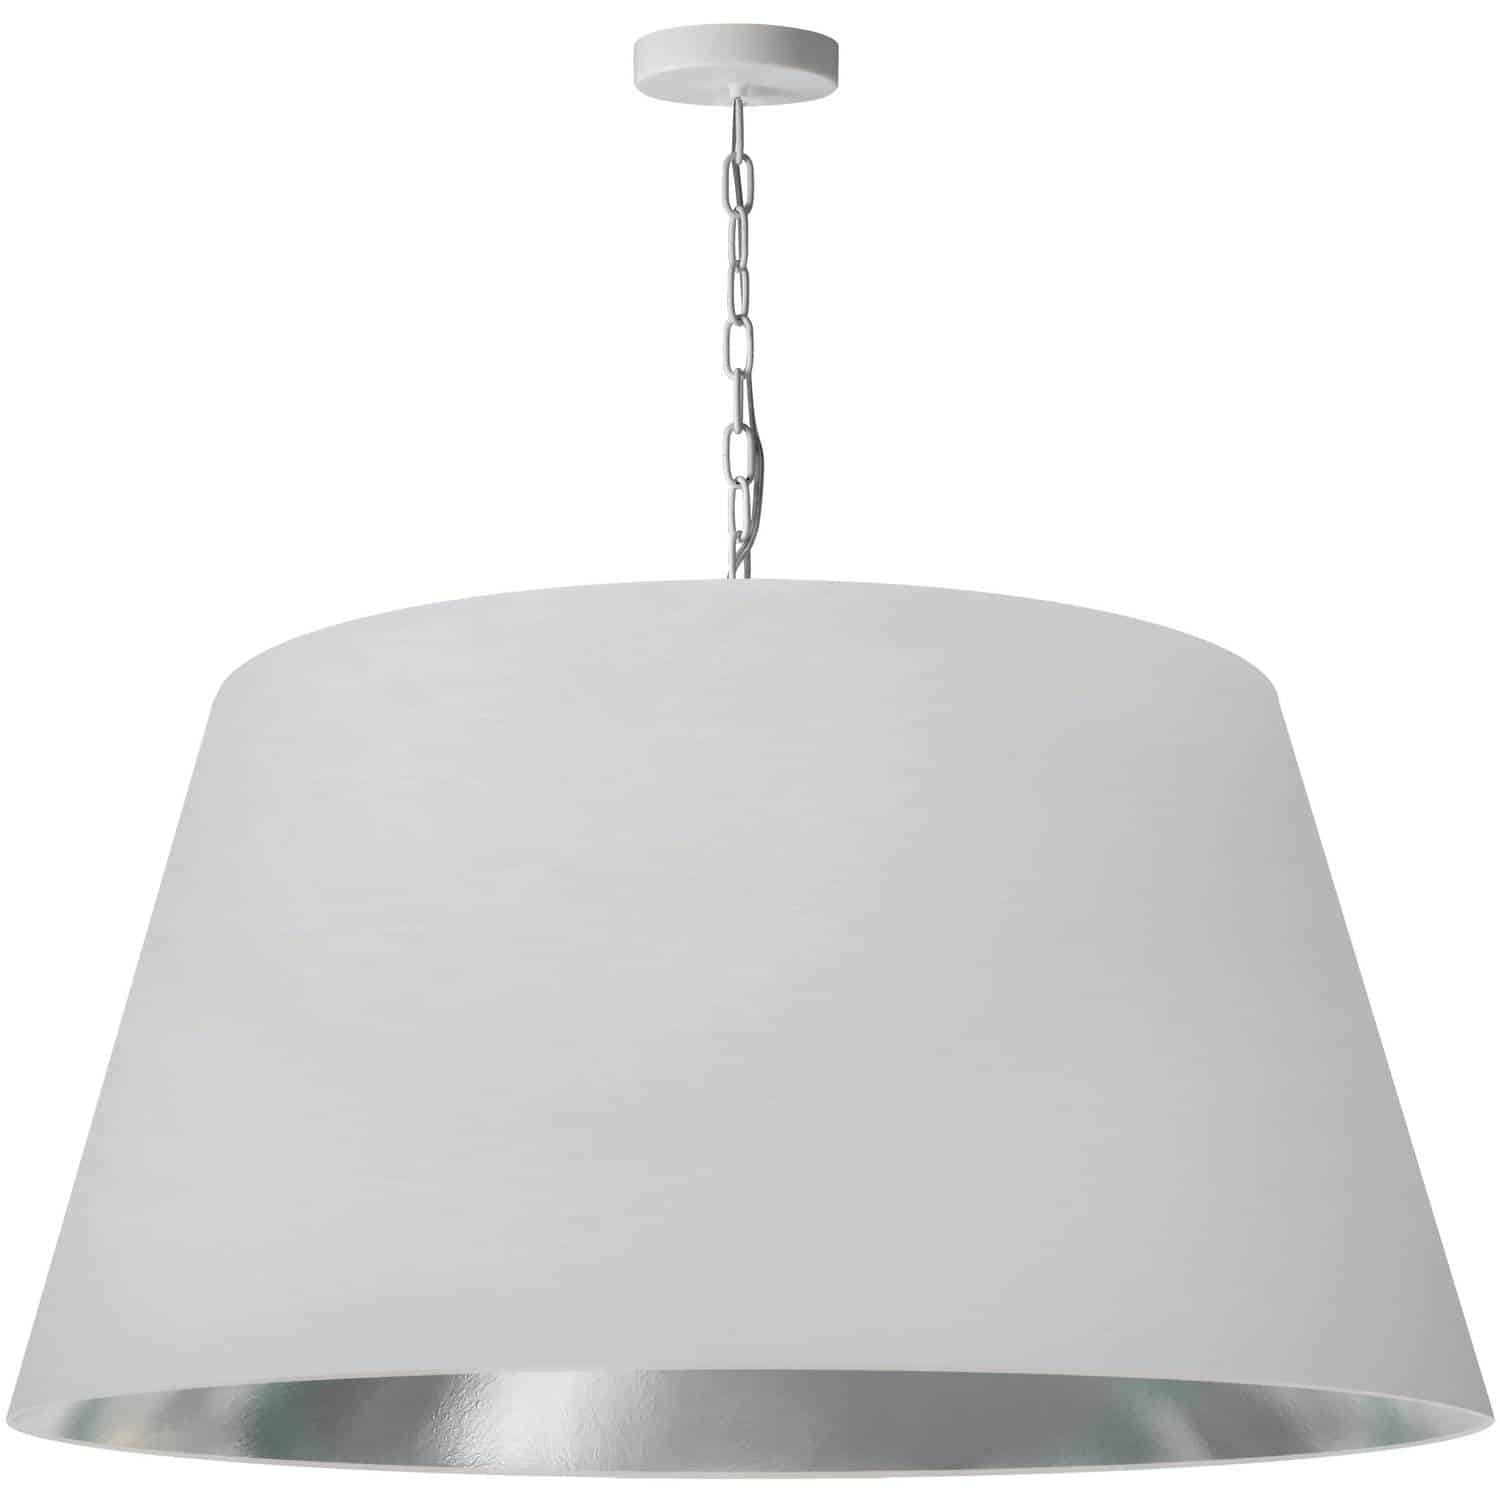 1 Light Brynn Extra Large Pendant, White/Silver Shade, White